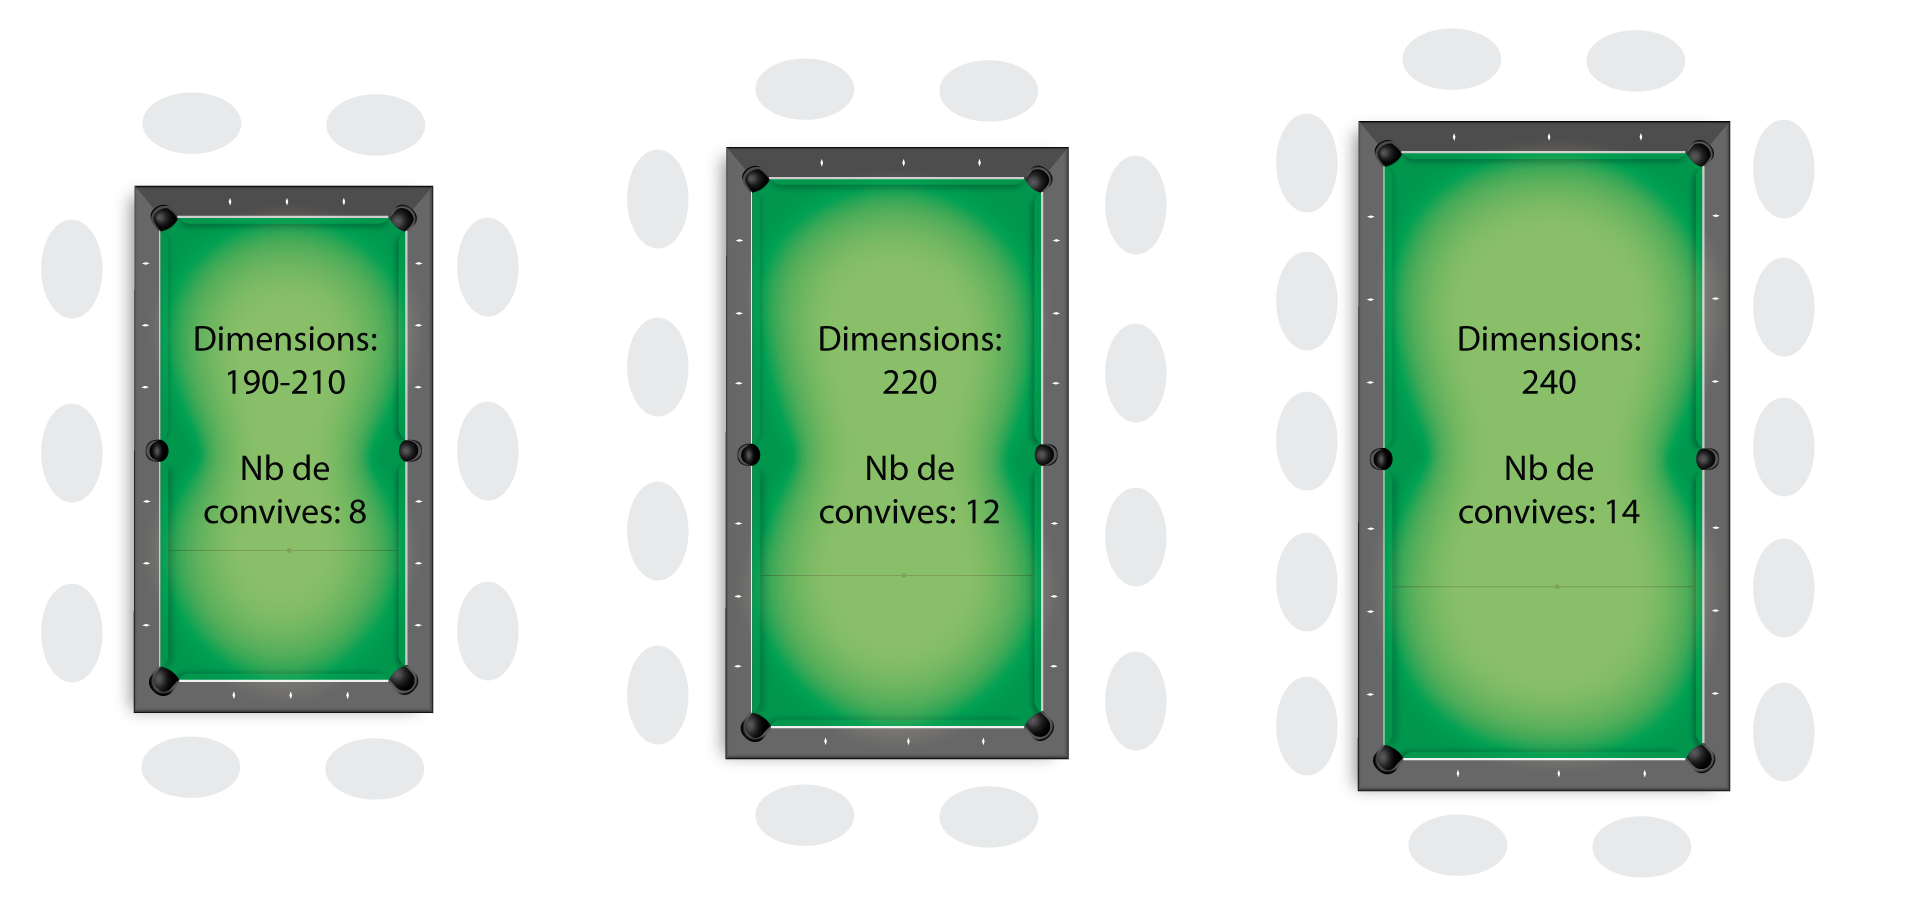 Pool Table Dimensions Other Sizes The Following Give Minimum Room